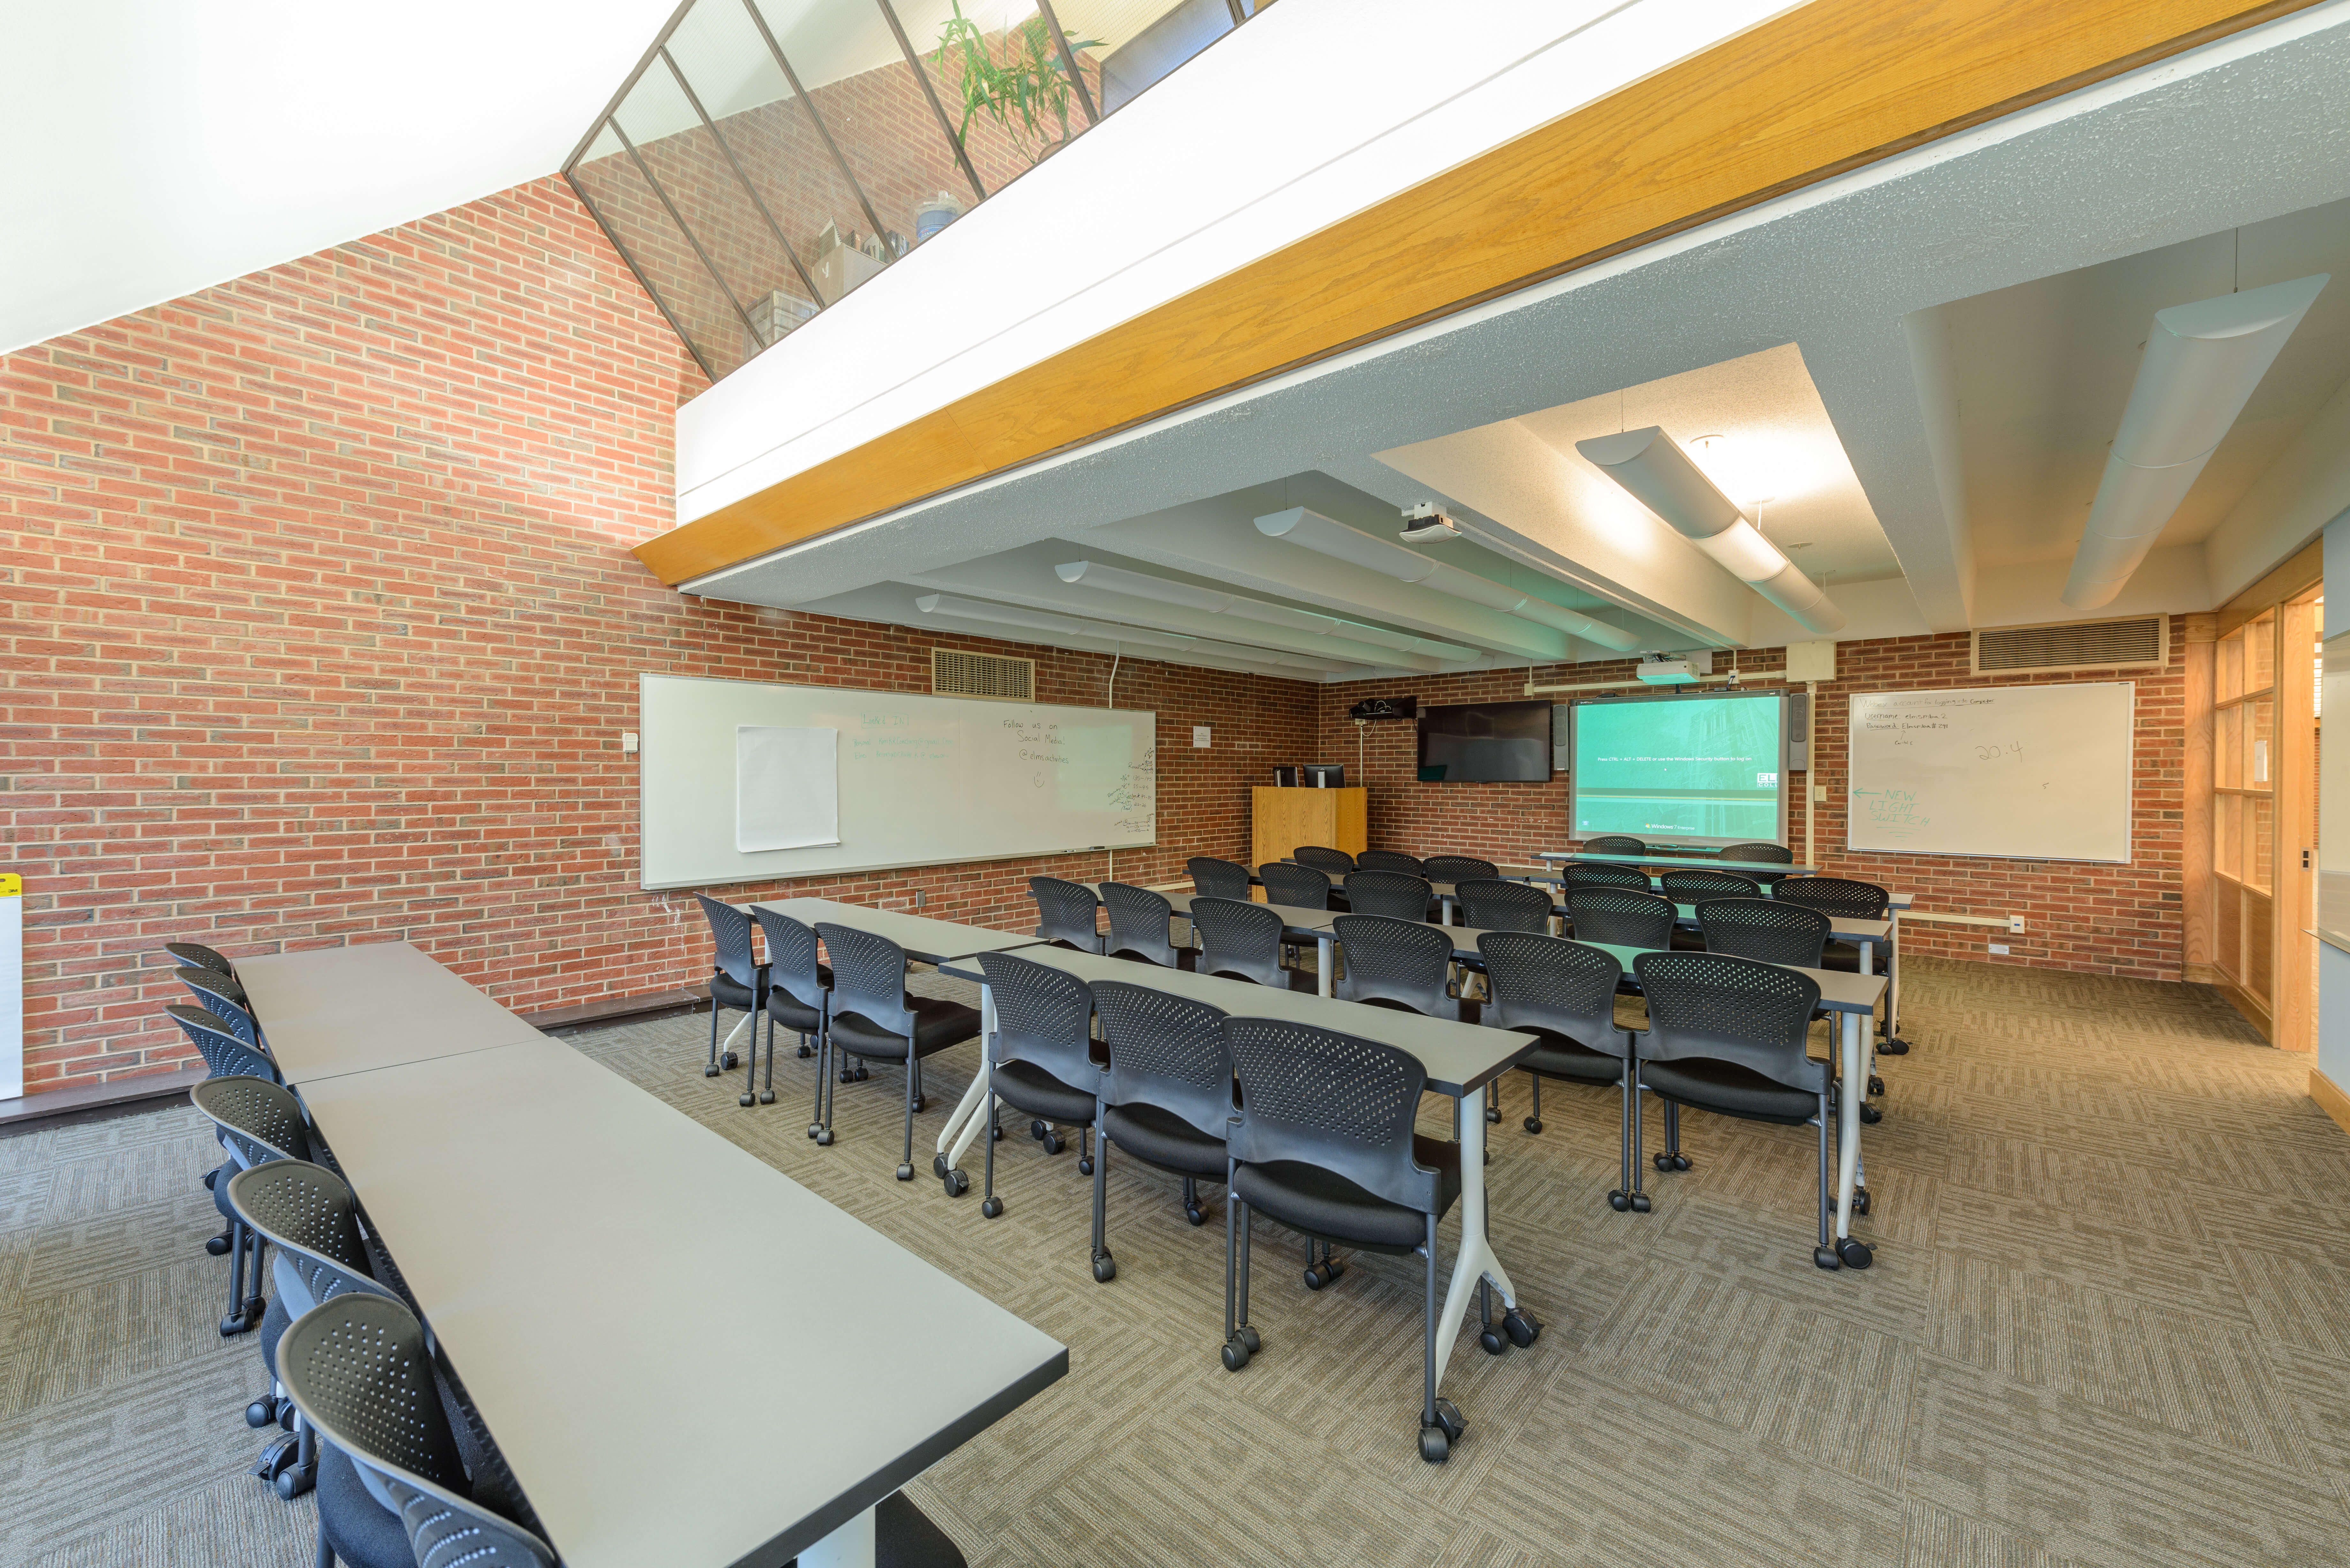 Photo of a classroom in Alumnae Library